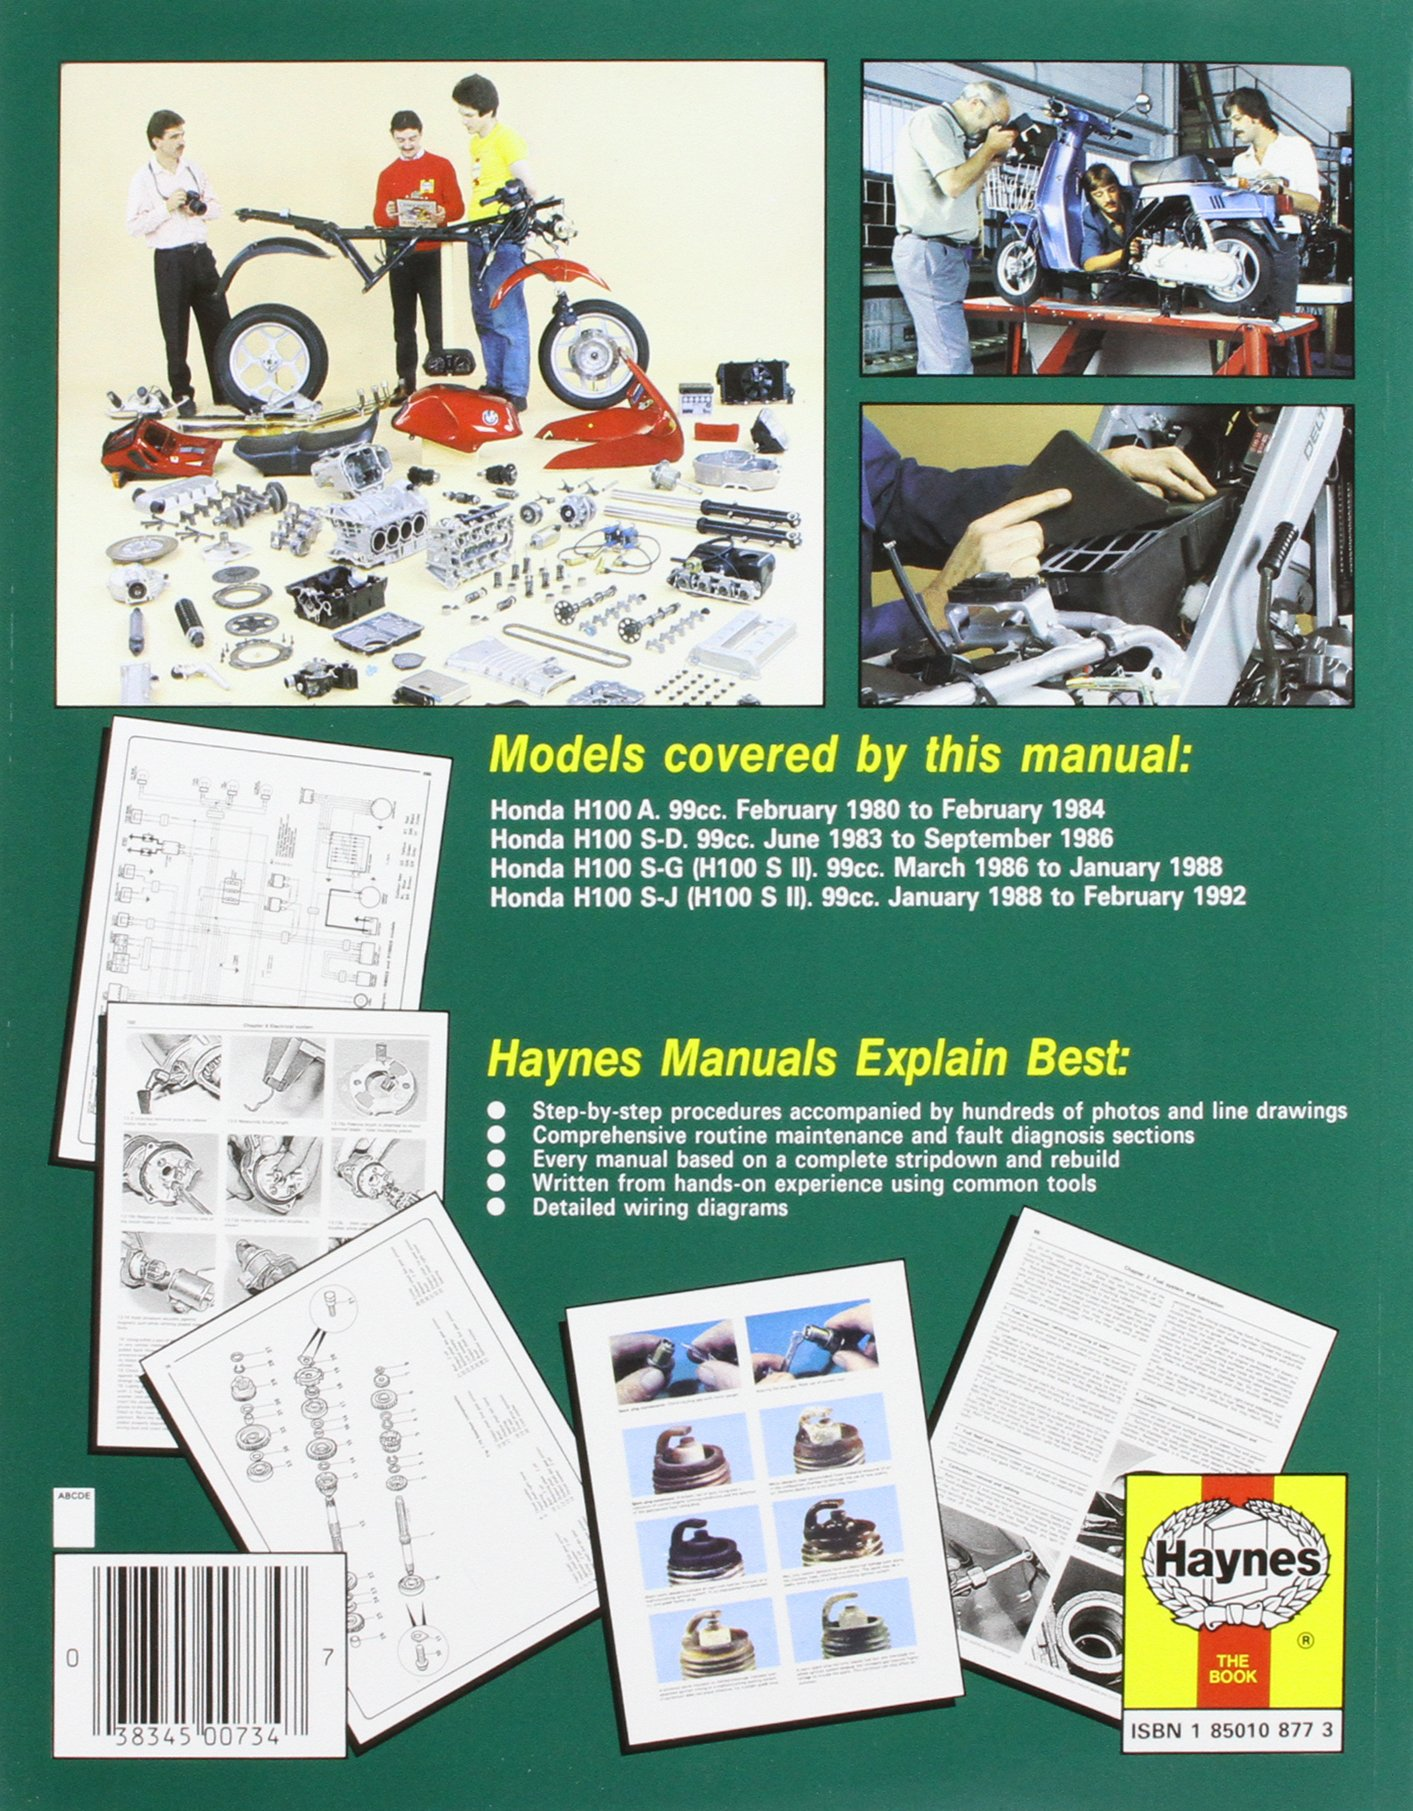 Honda H100 Wiring Diagram Hyundai And H100s Singles Owners Workshop Manual Motorcycle